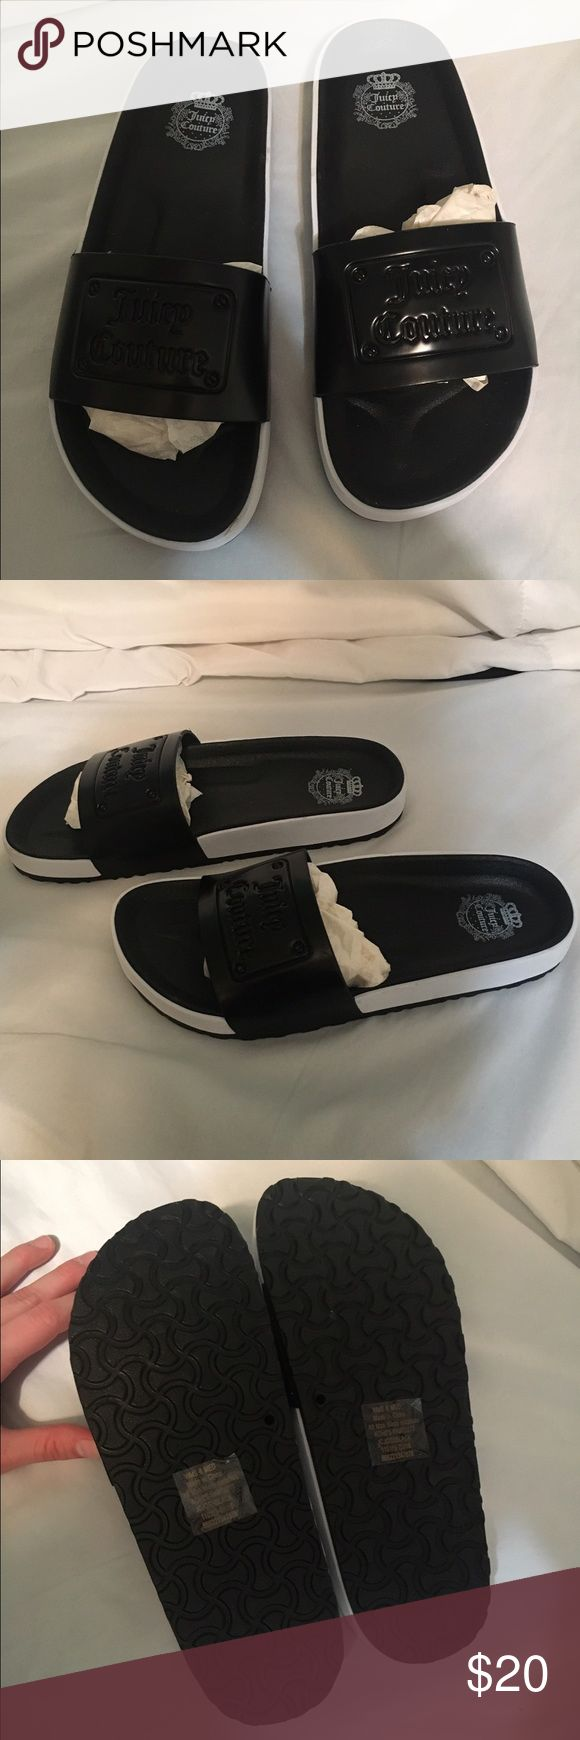 JUICY COUTURE SPA N SPORT SANDALS SIZE 6 WOMEN! JUICY COUTURE SPA N SPORT SANDALS SIZE 6 WOMEN!  Slip on black and white.... new.... never worn! Juicy Couture Shoes Sandals